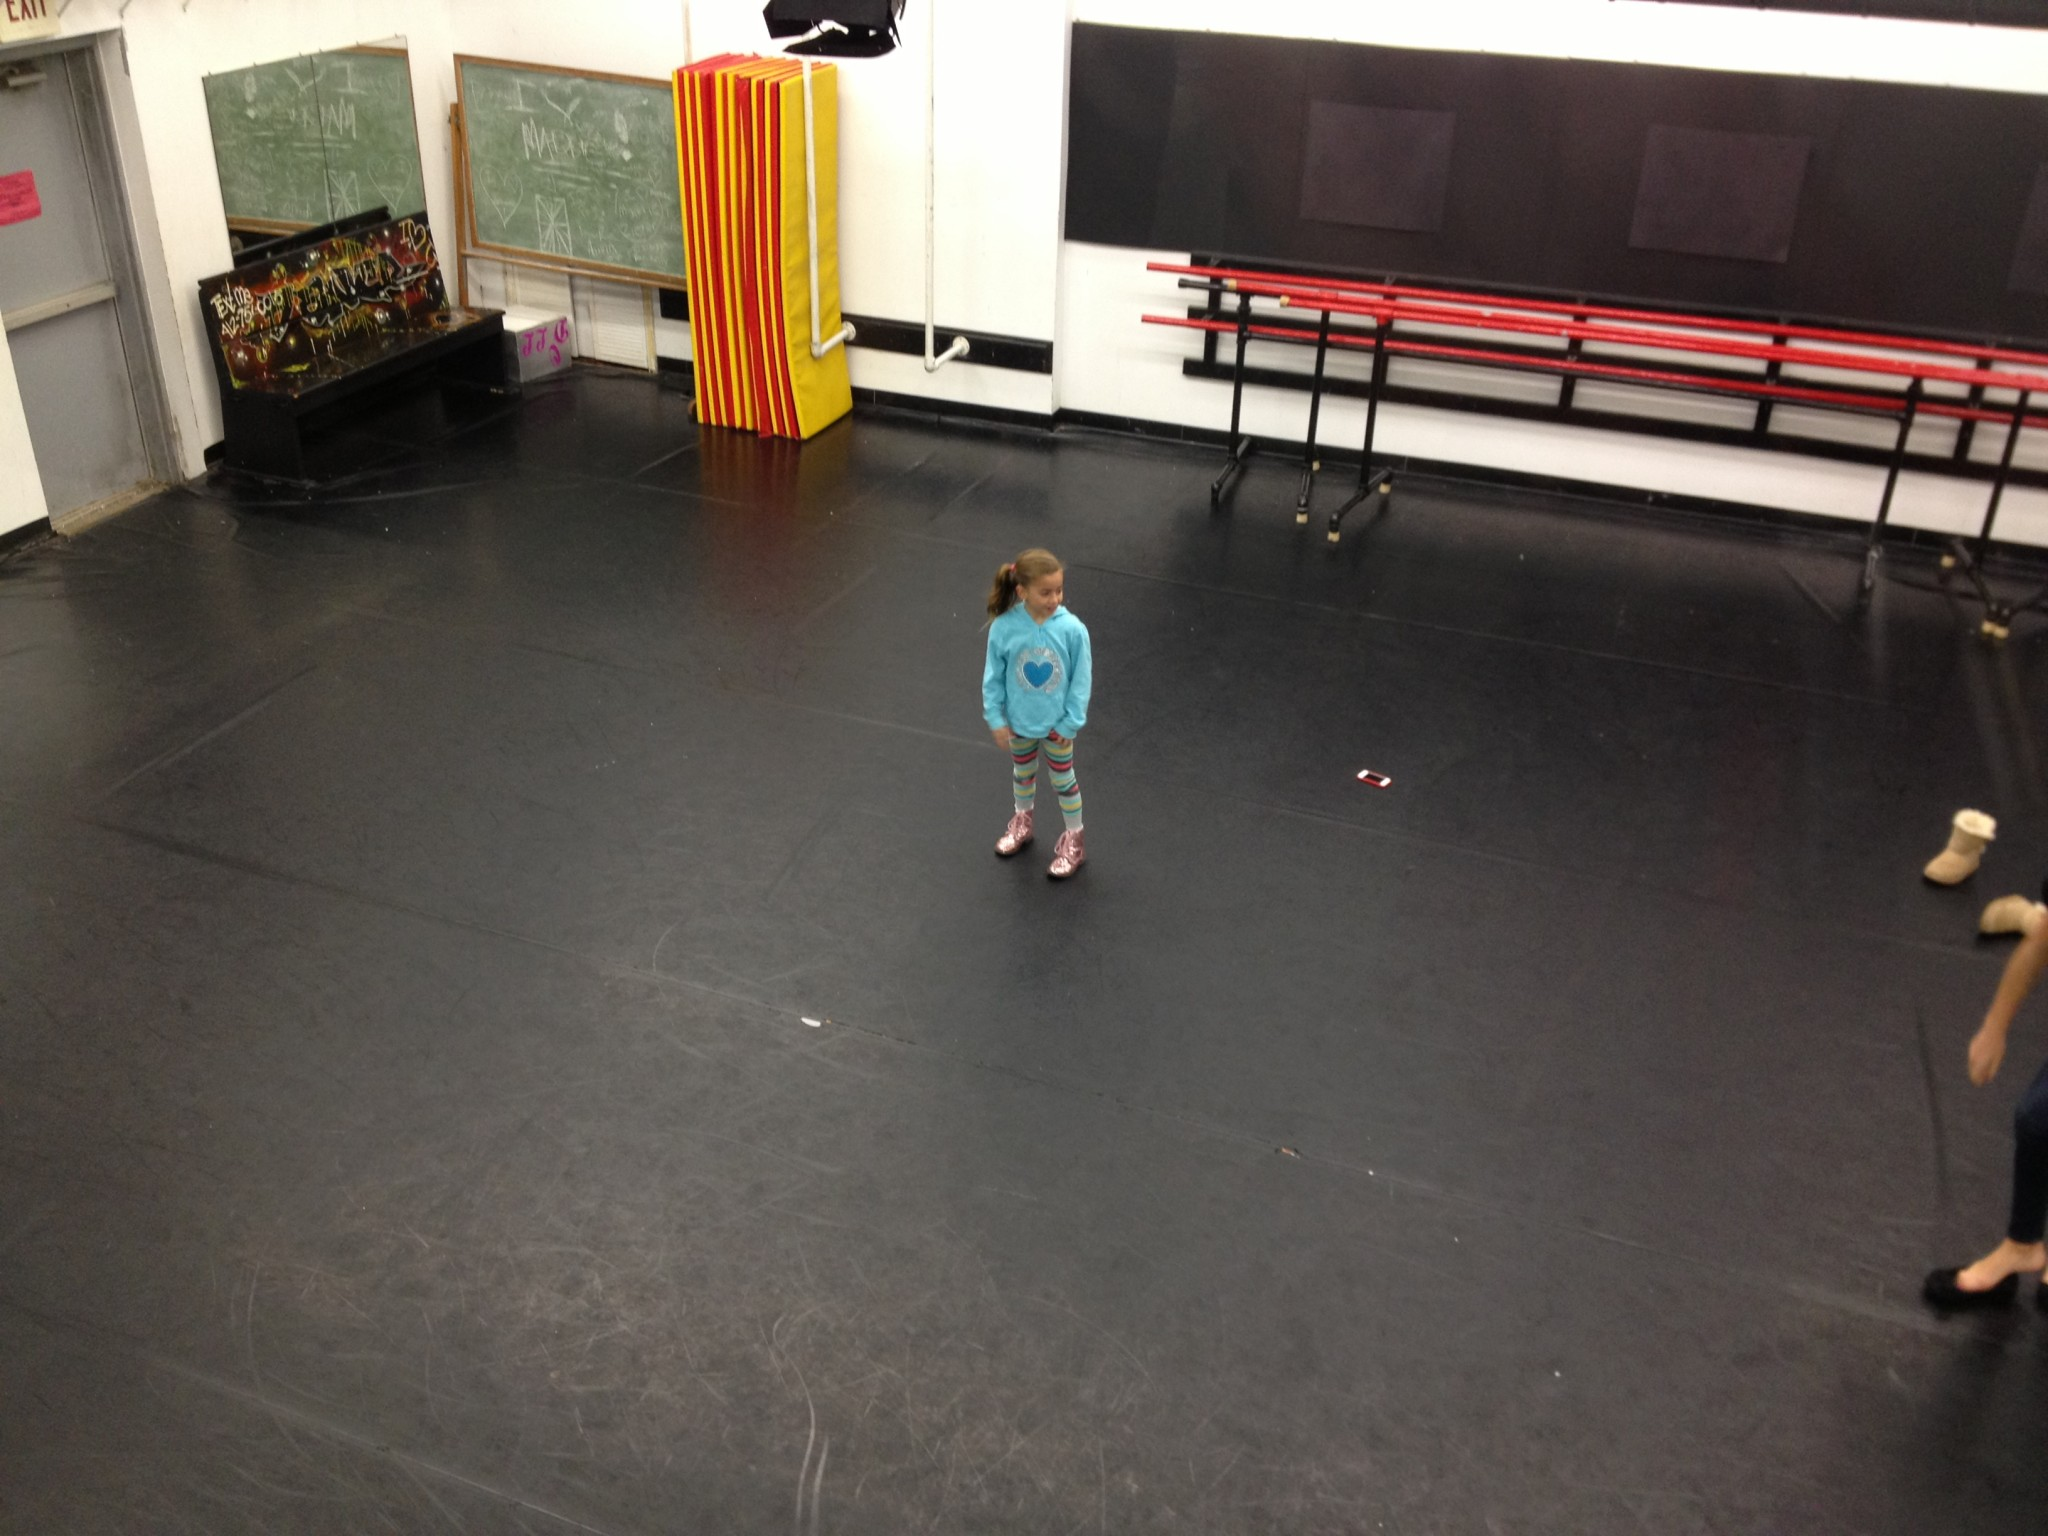 G getting instruction at ALDC from above 2013.jpg